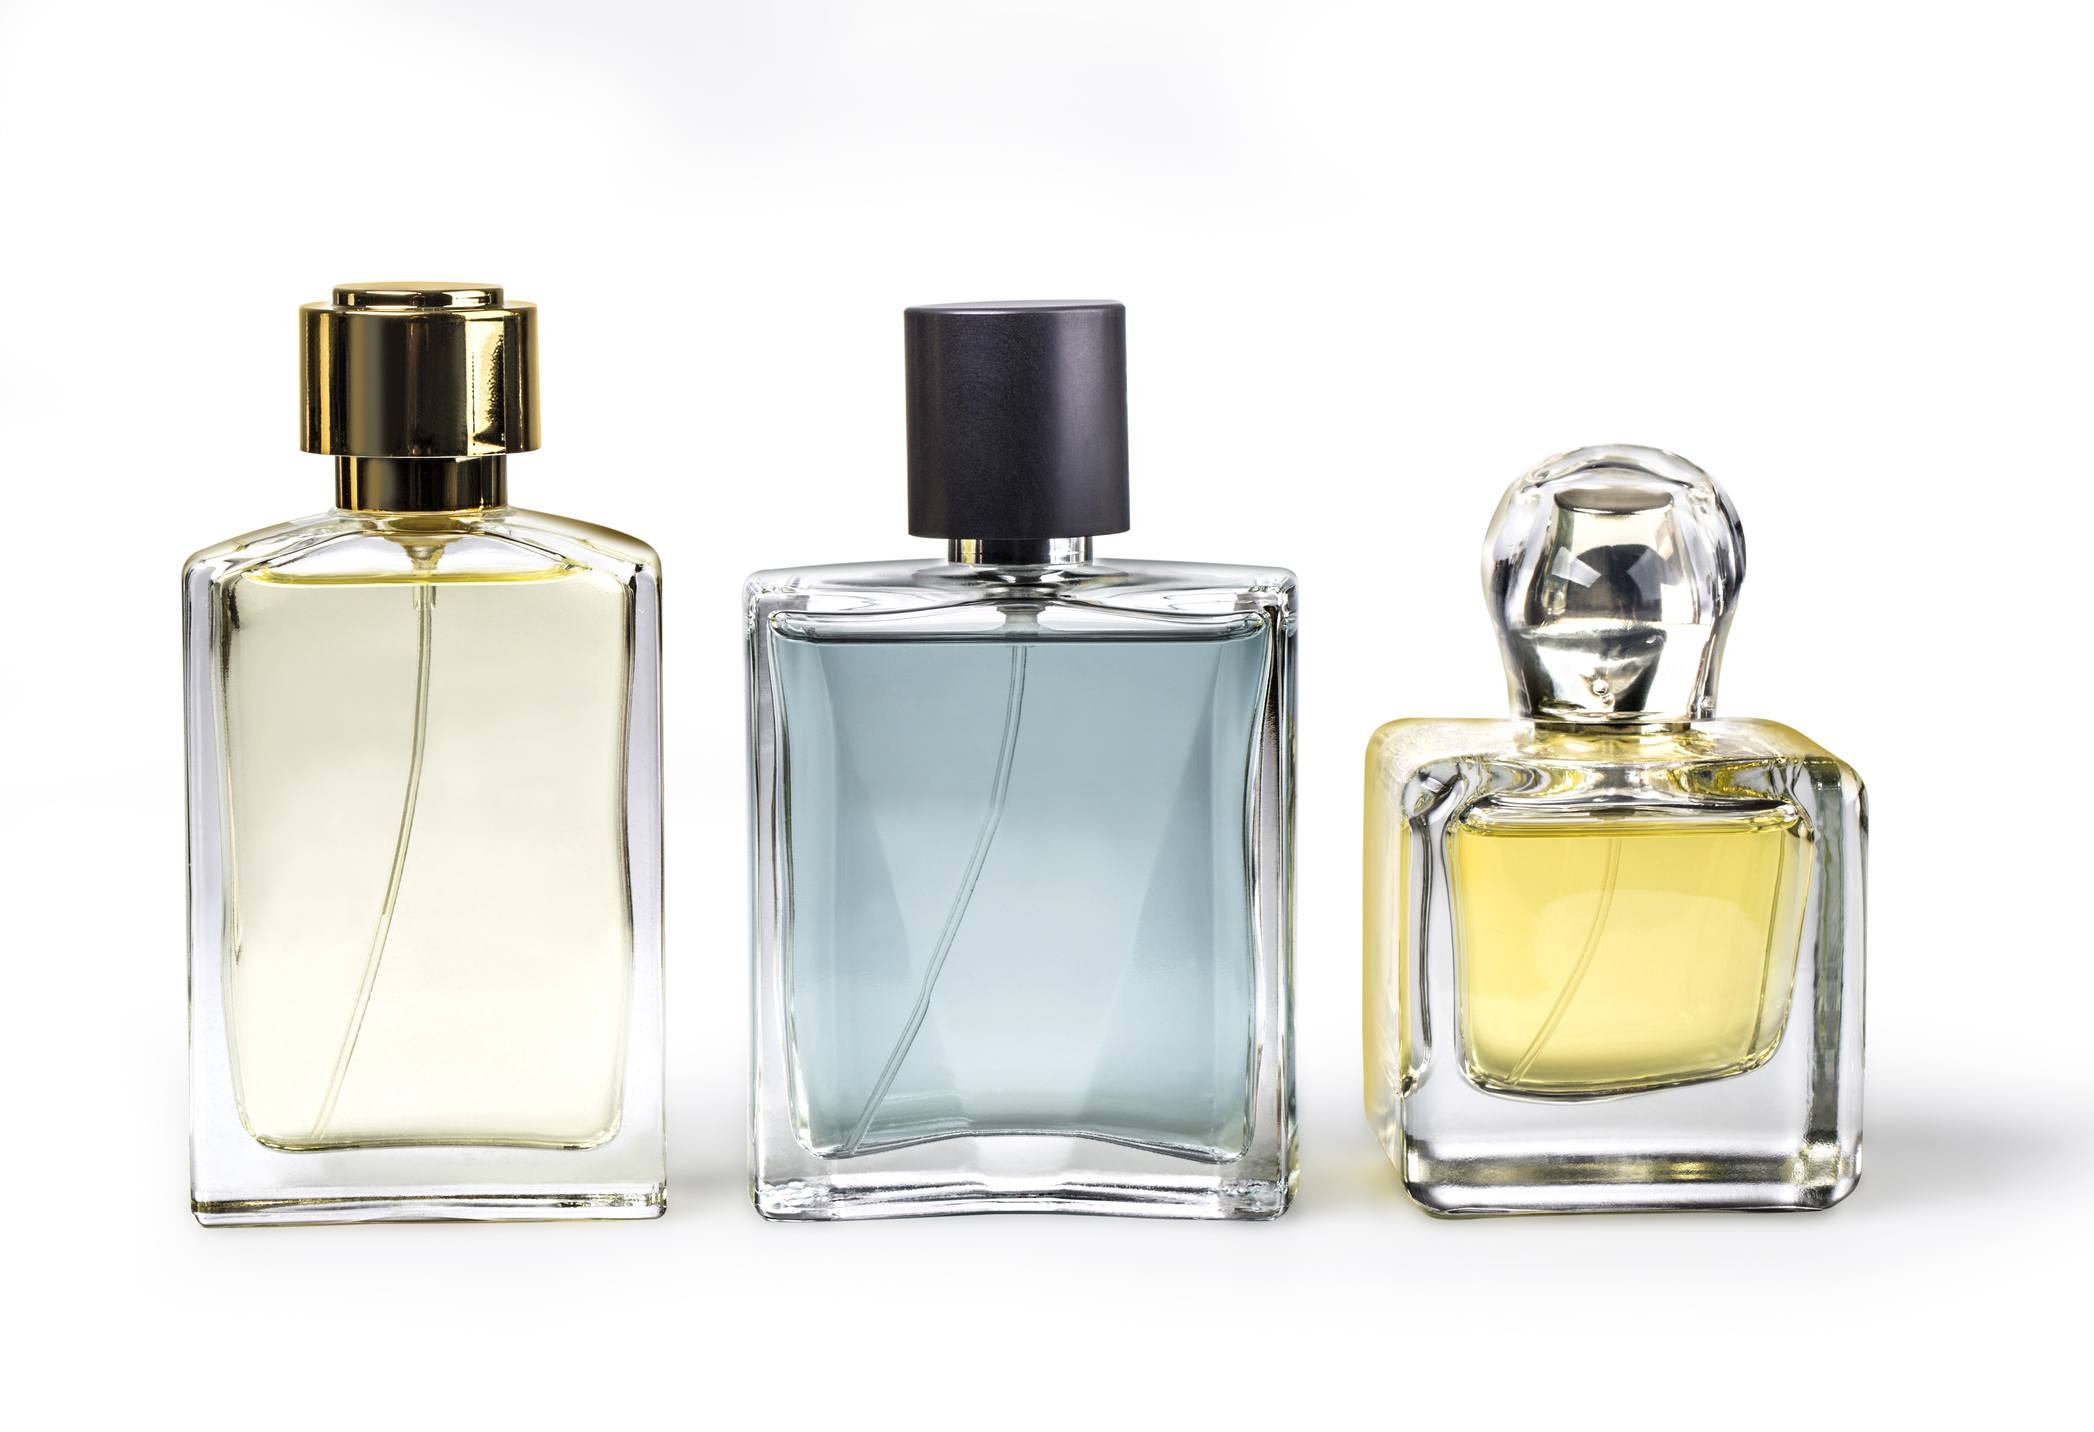 Studio photo of set of luxury perfume bottles